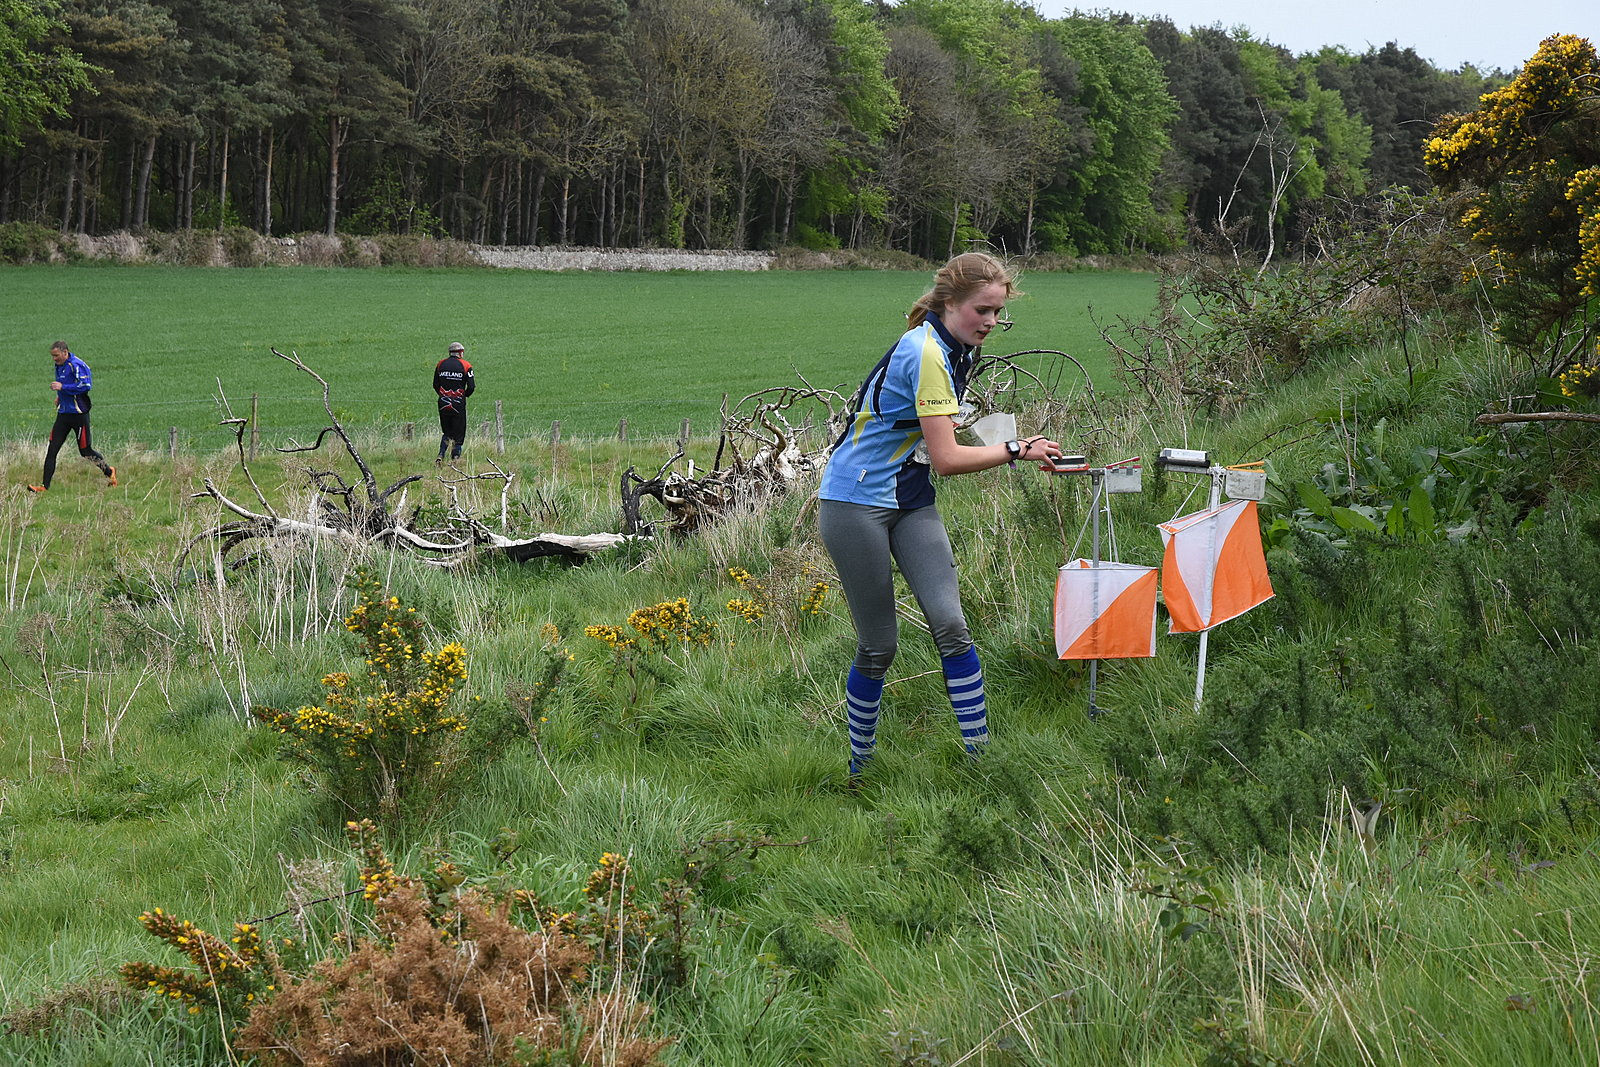 Young orienteer connecting with nature in the Scottish outdoors